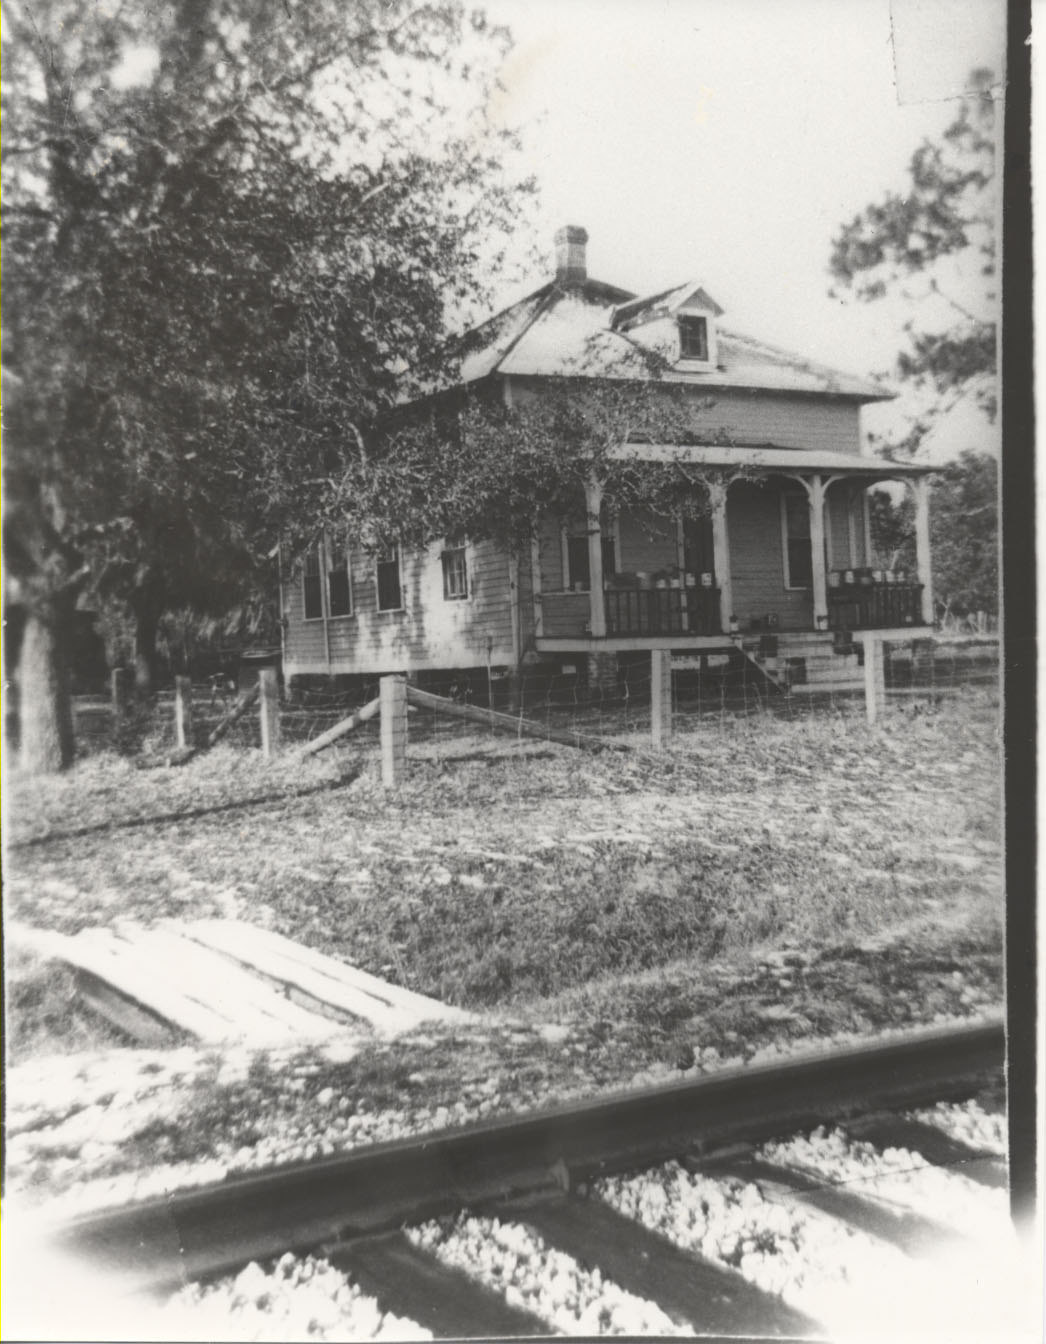 The F.E.C. house as it appeared in 1900